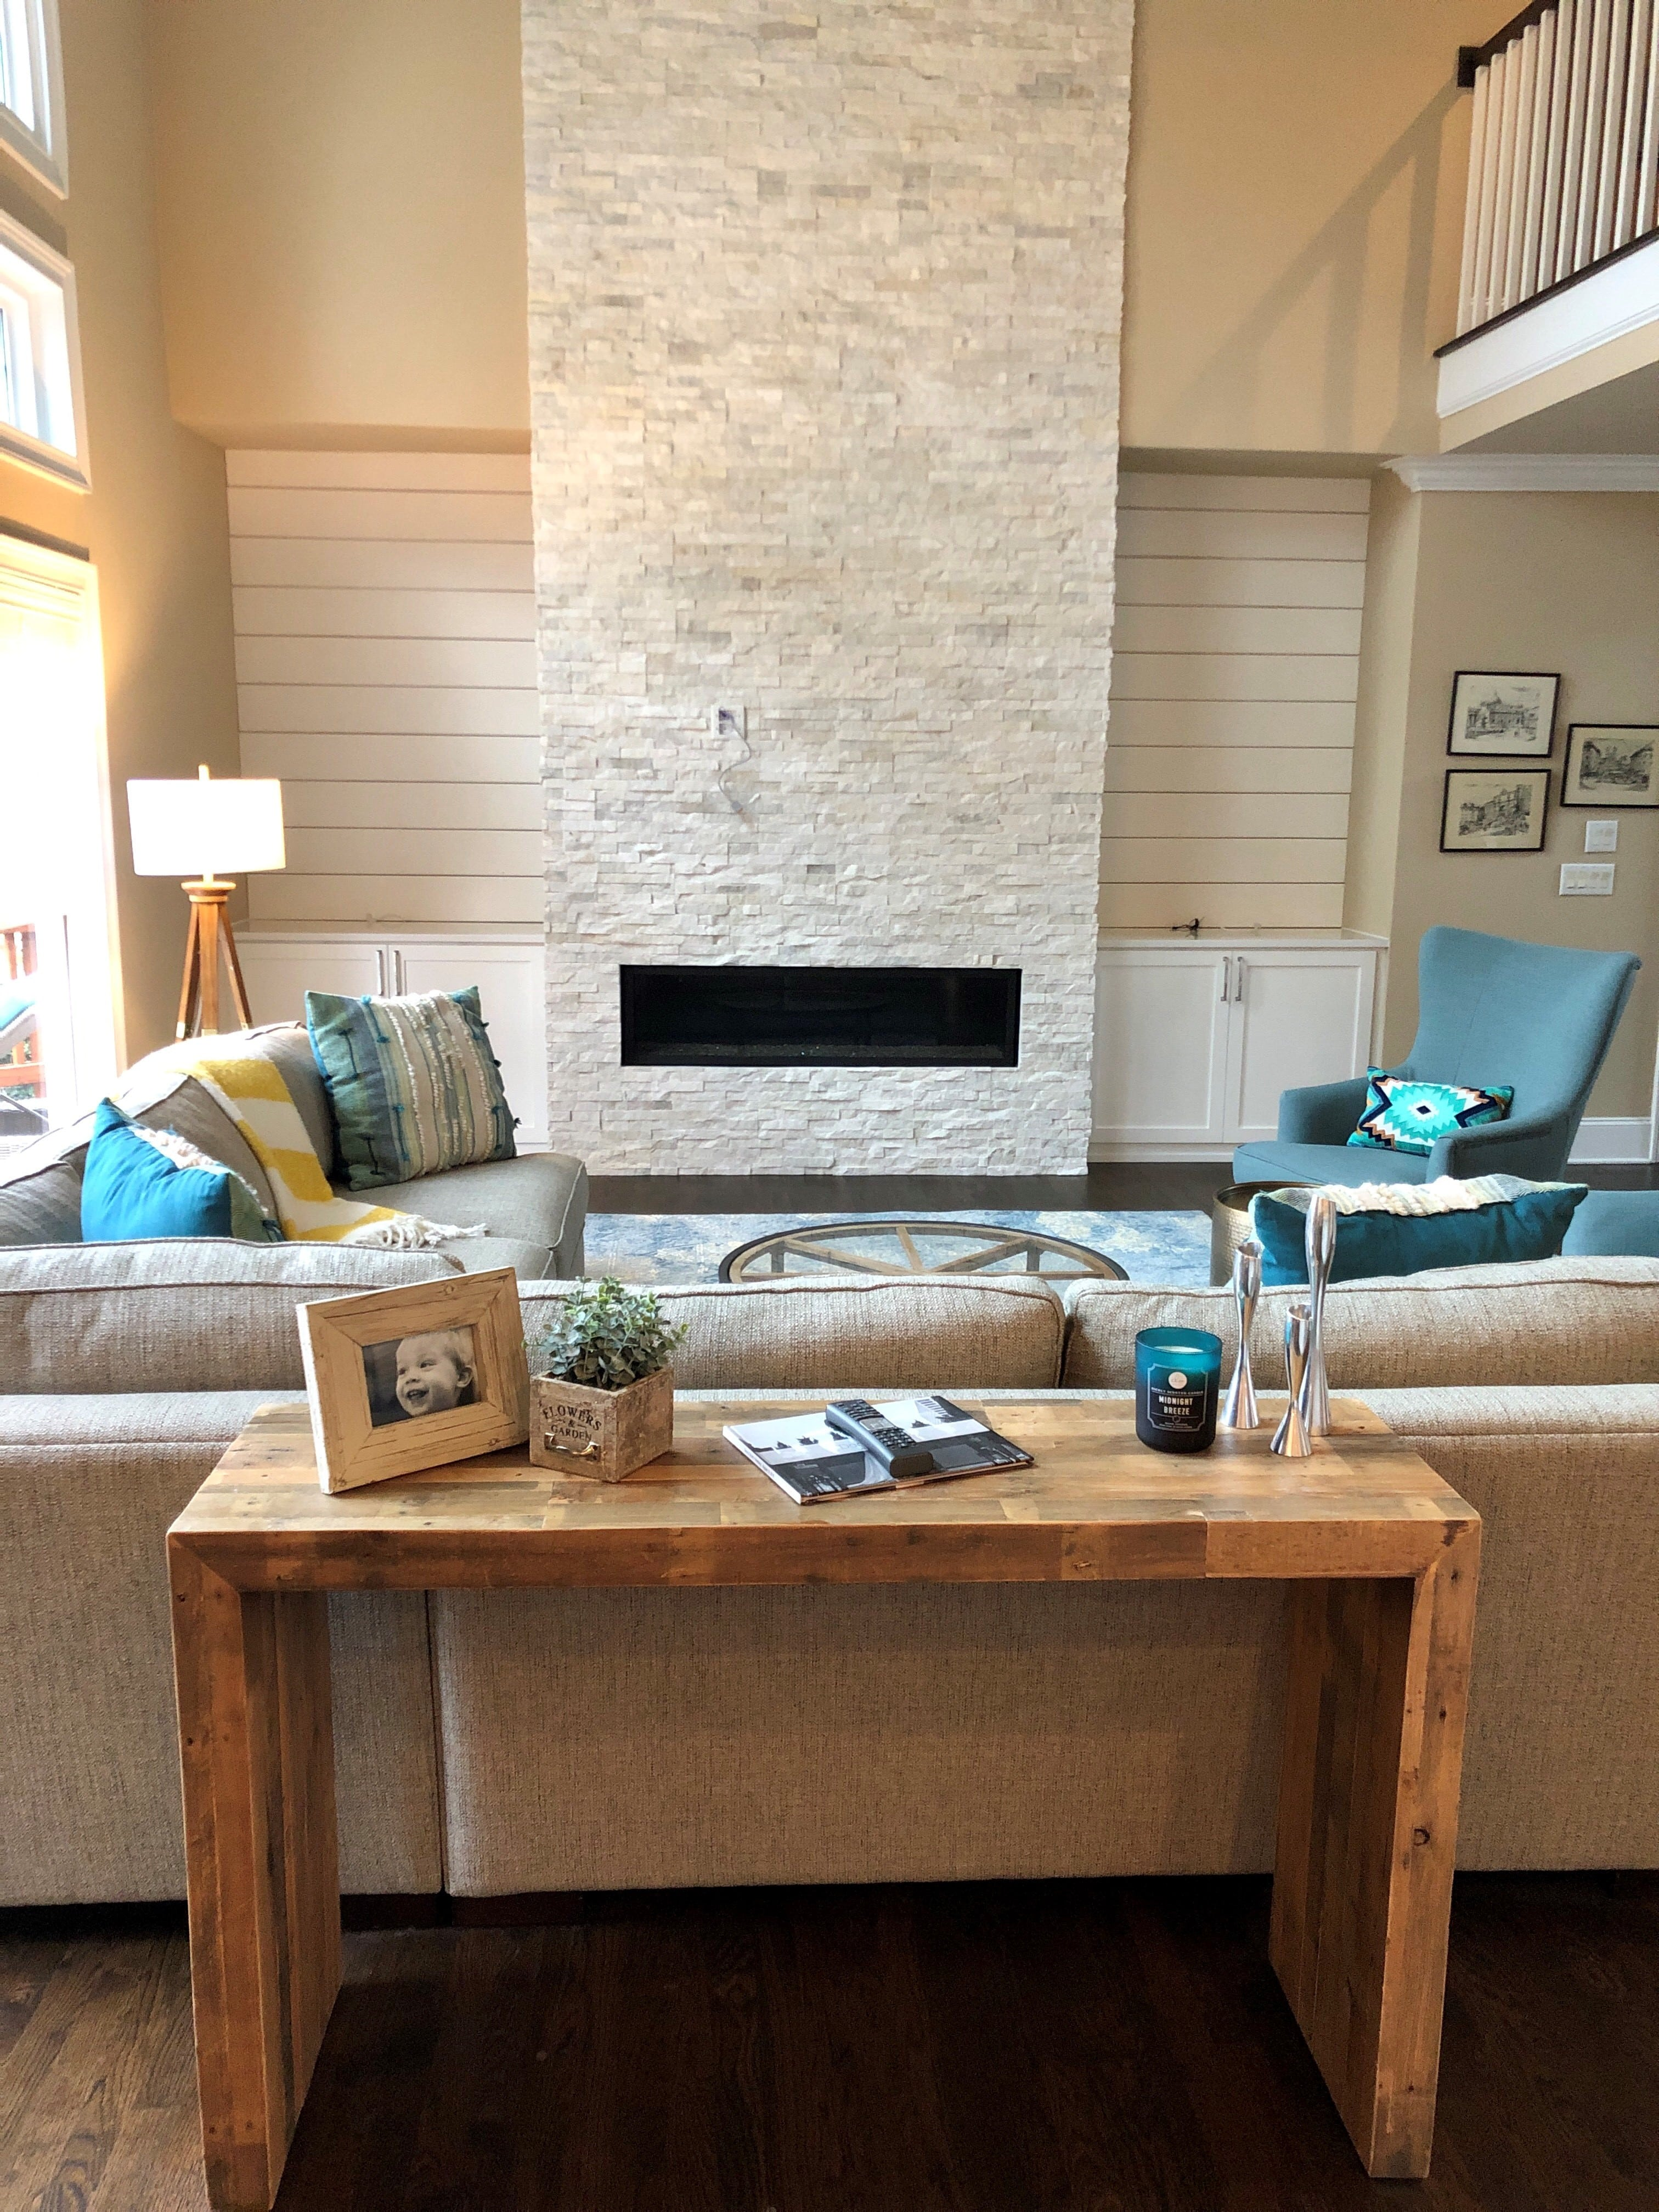 Norstone White Rock Panels used on a two story residential fireplace with a well designed living room with neutral color pallete with light blue accents